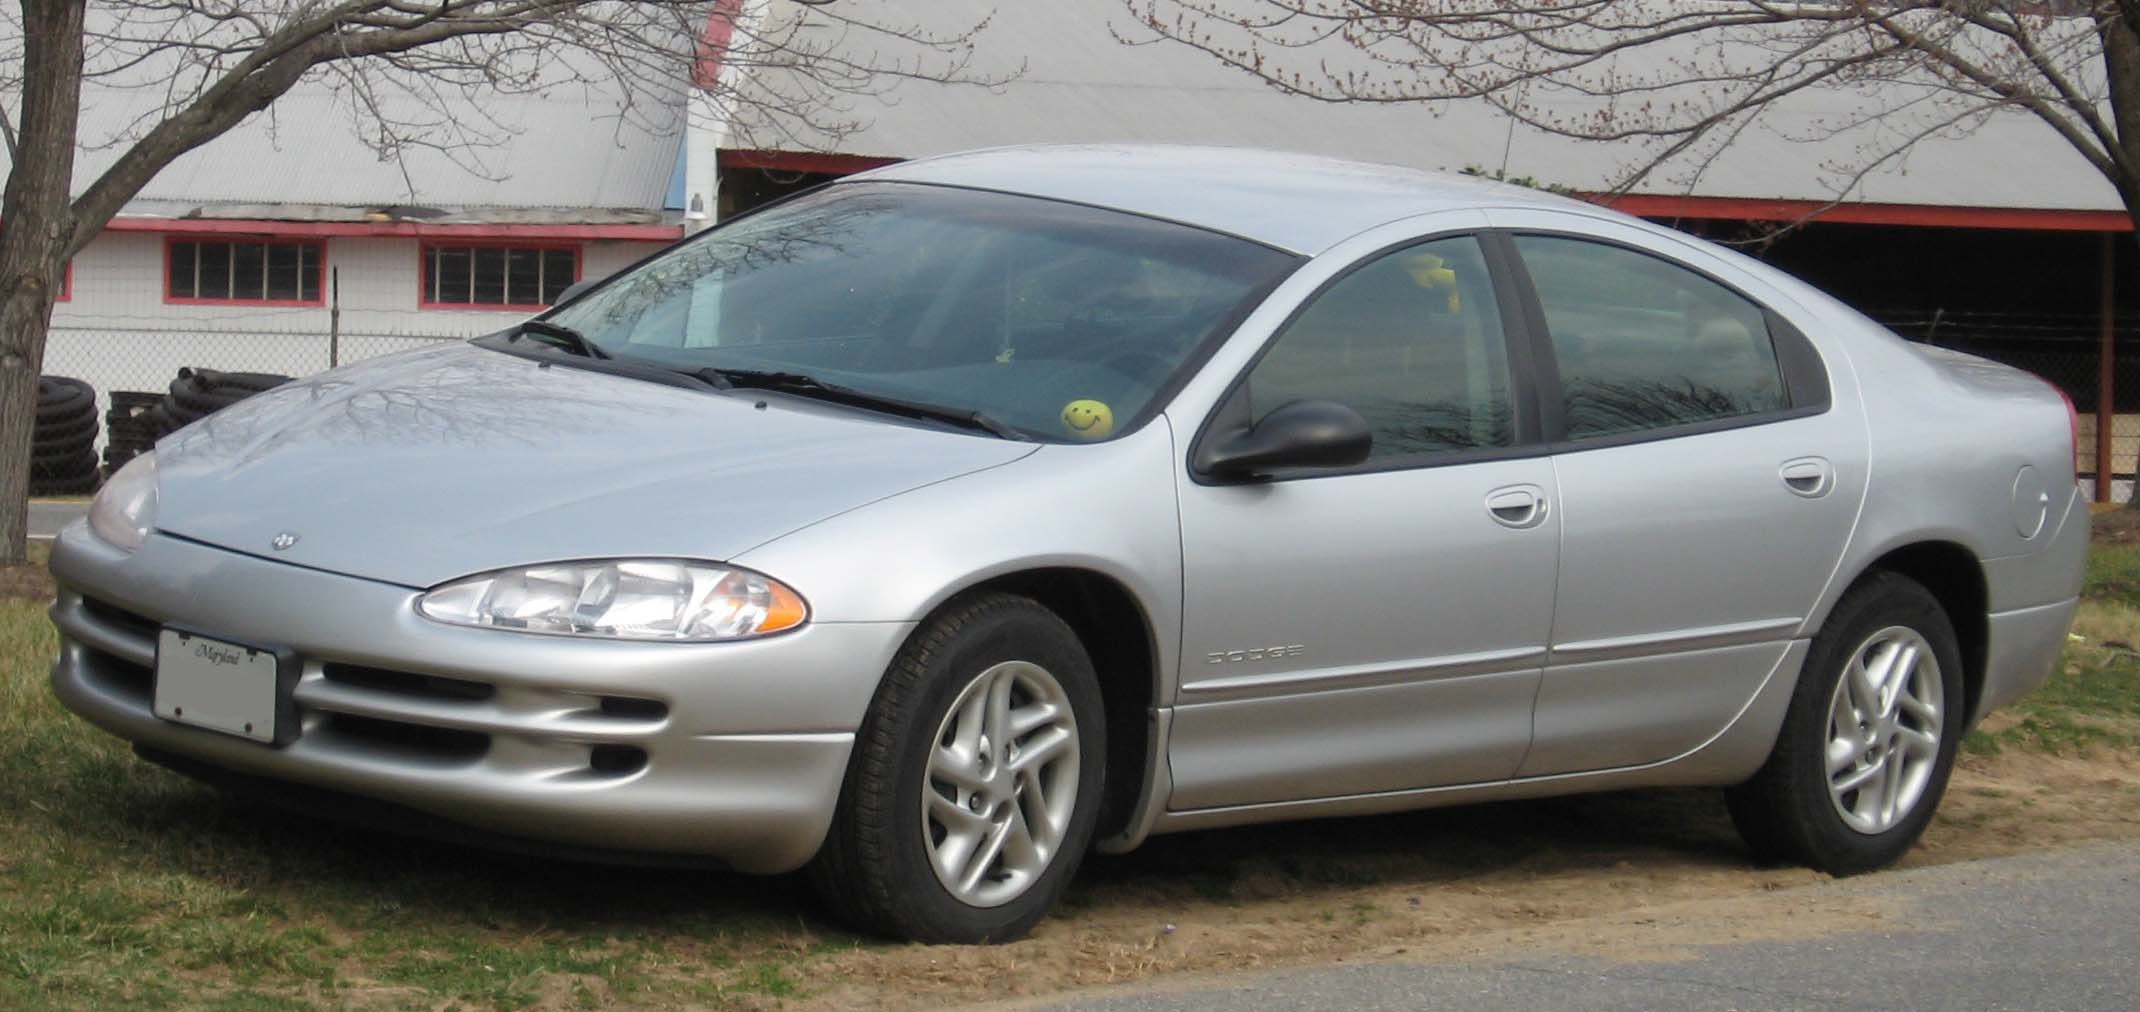 File:98-04 Dodge Intrepid.jpg - Wikimedia Commons